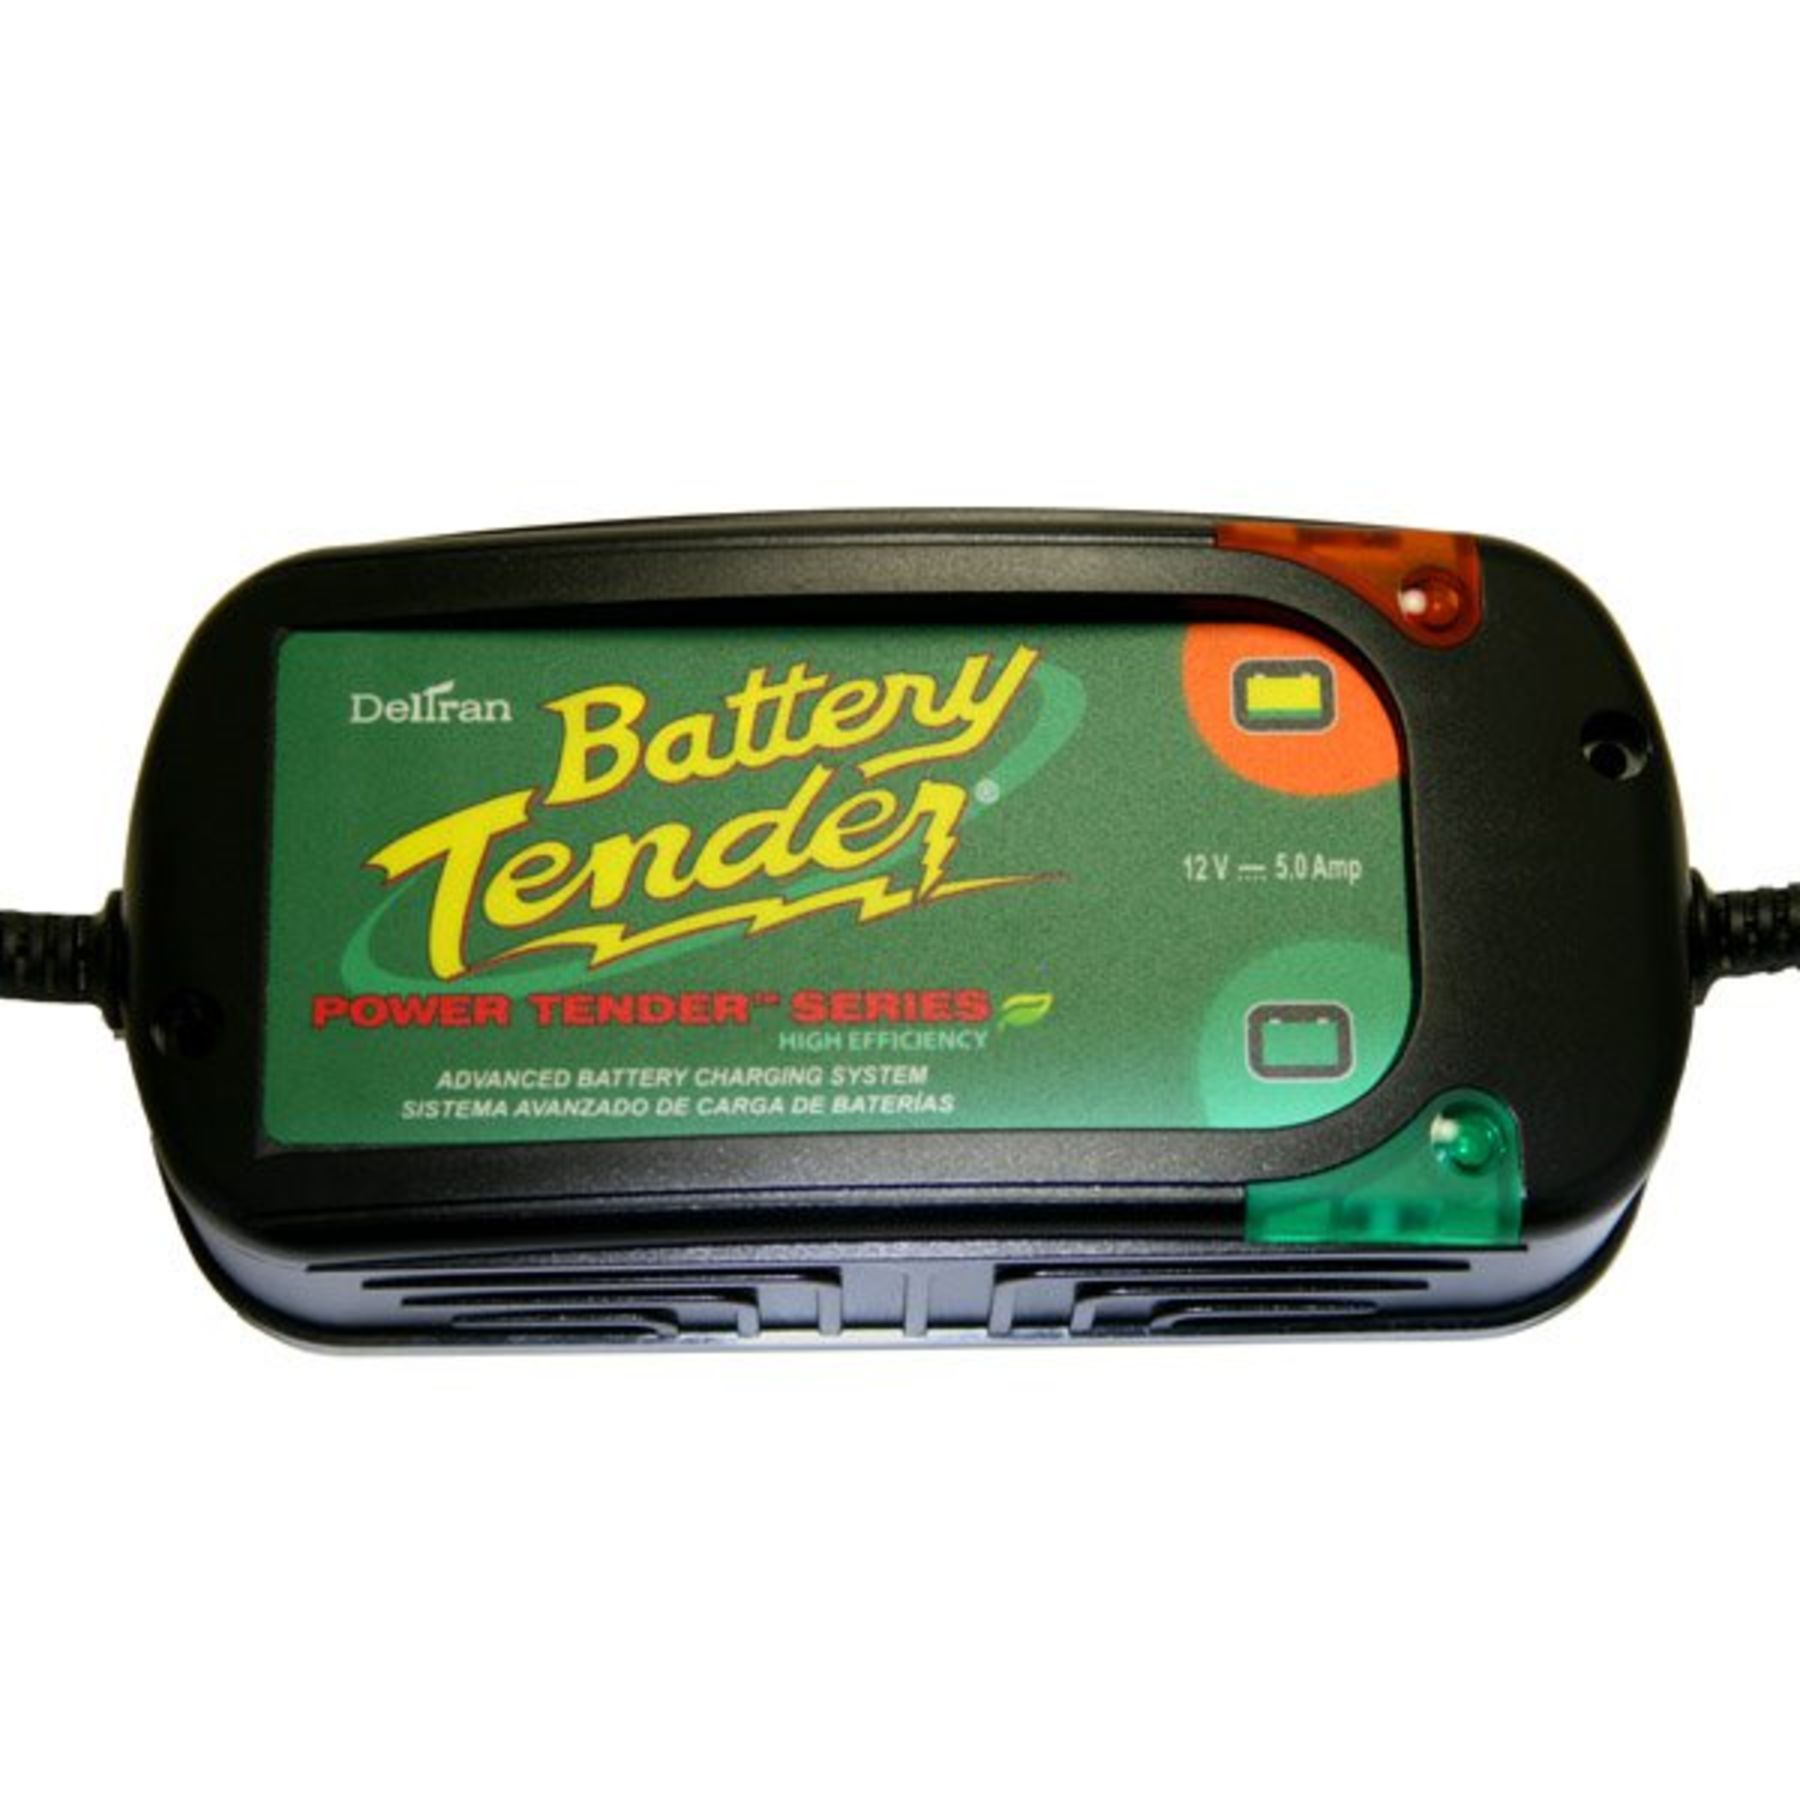 BATTERY TENDER PLUS 5 AMP HE CHARGER 022-0186G-DL-WH